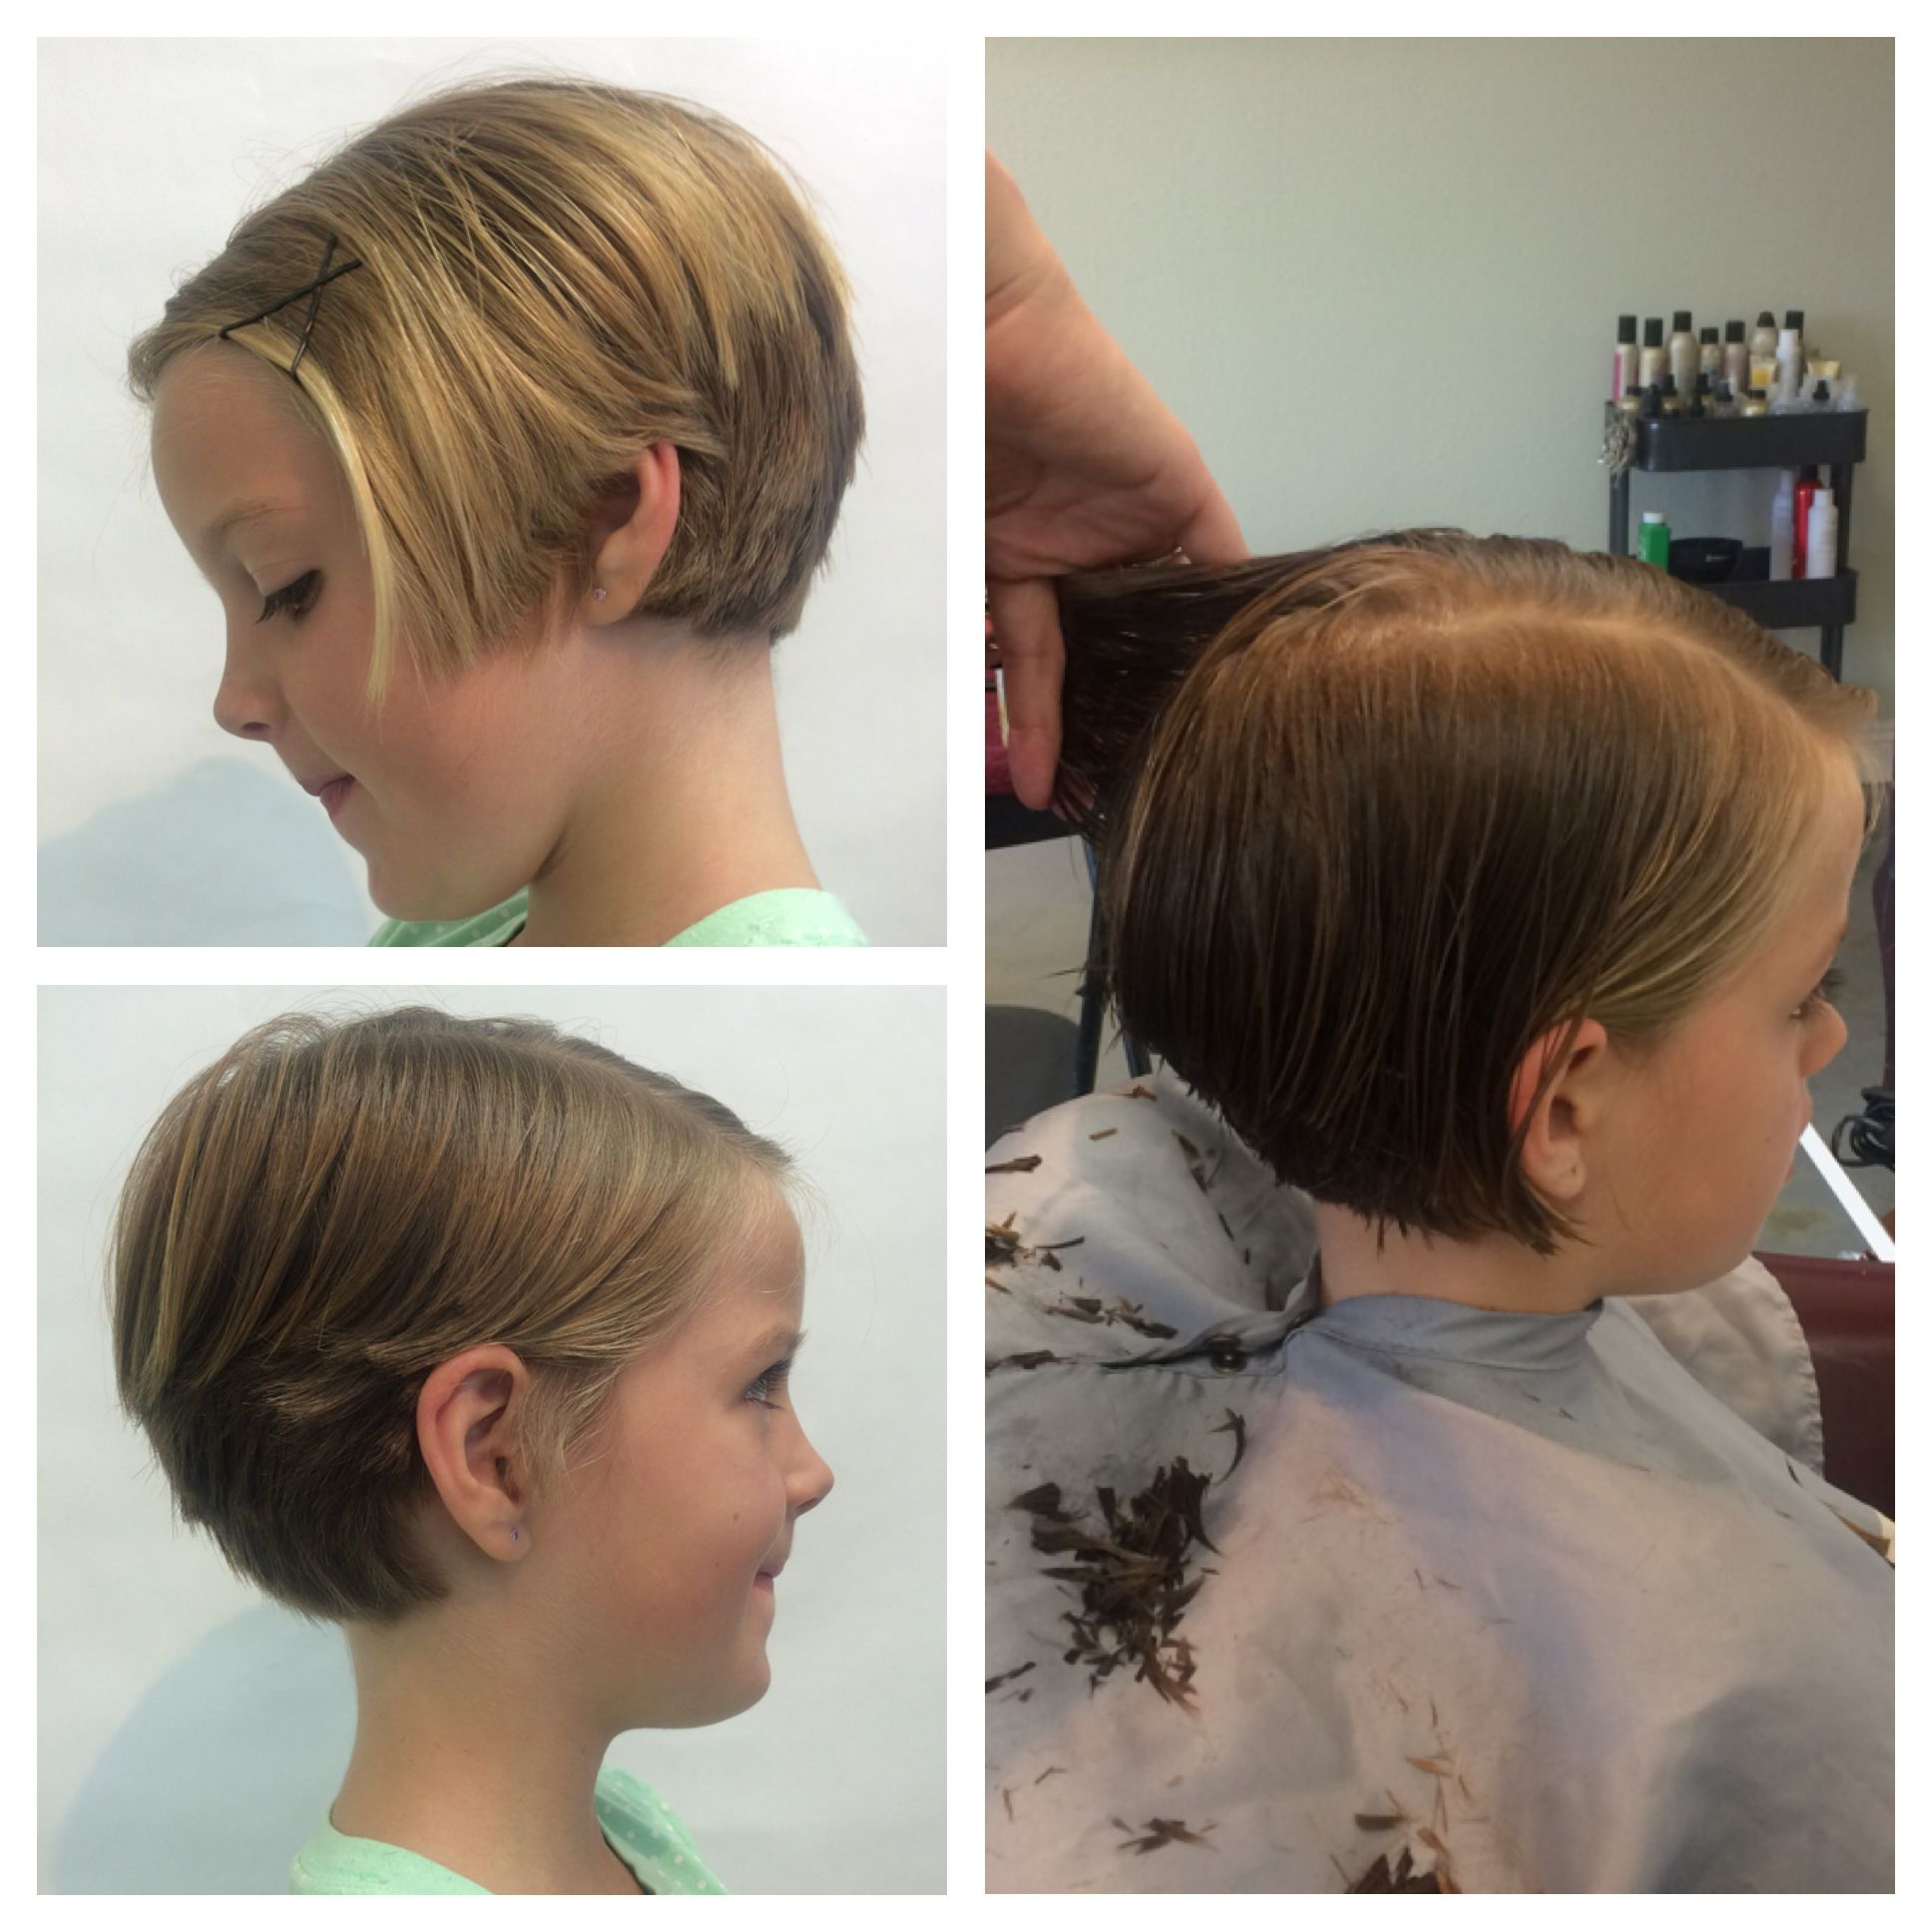 Child Pixie Hair Cut Girls Pixie Hairstyle Cute Short Hairnicole Inside Little Girl Short Hairstyles Pictures (View 3 of 25)